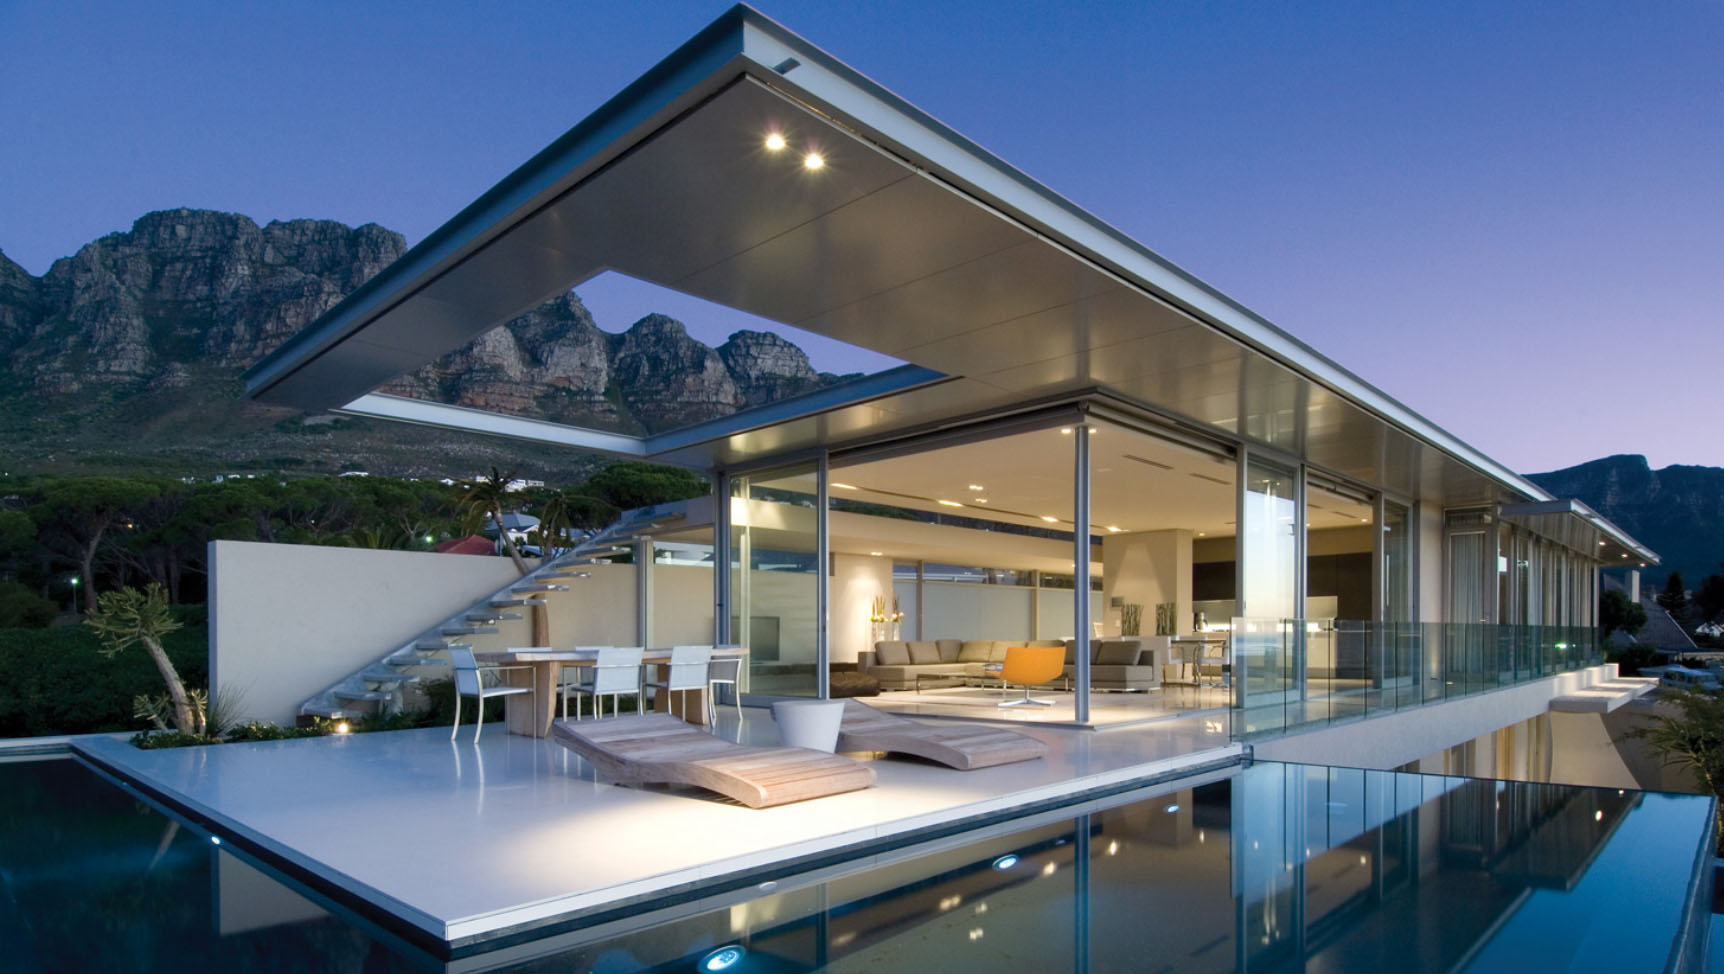 Minimalist ocean view home in south africa idesignarch for Modern house minimalist design